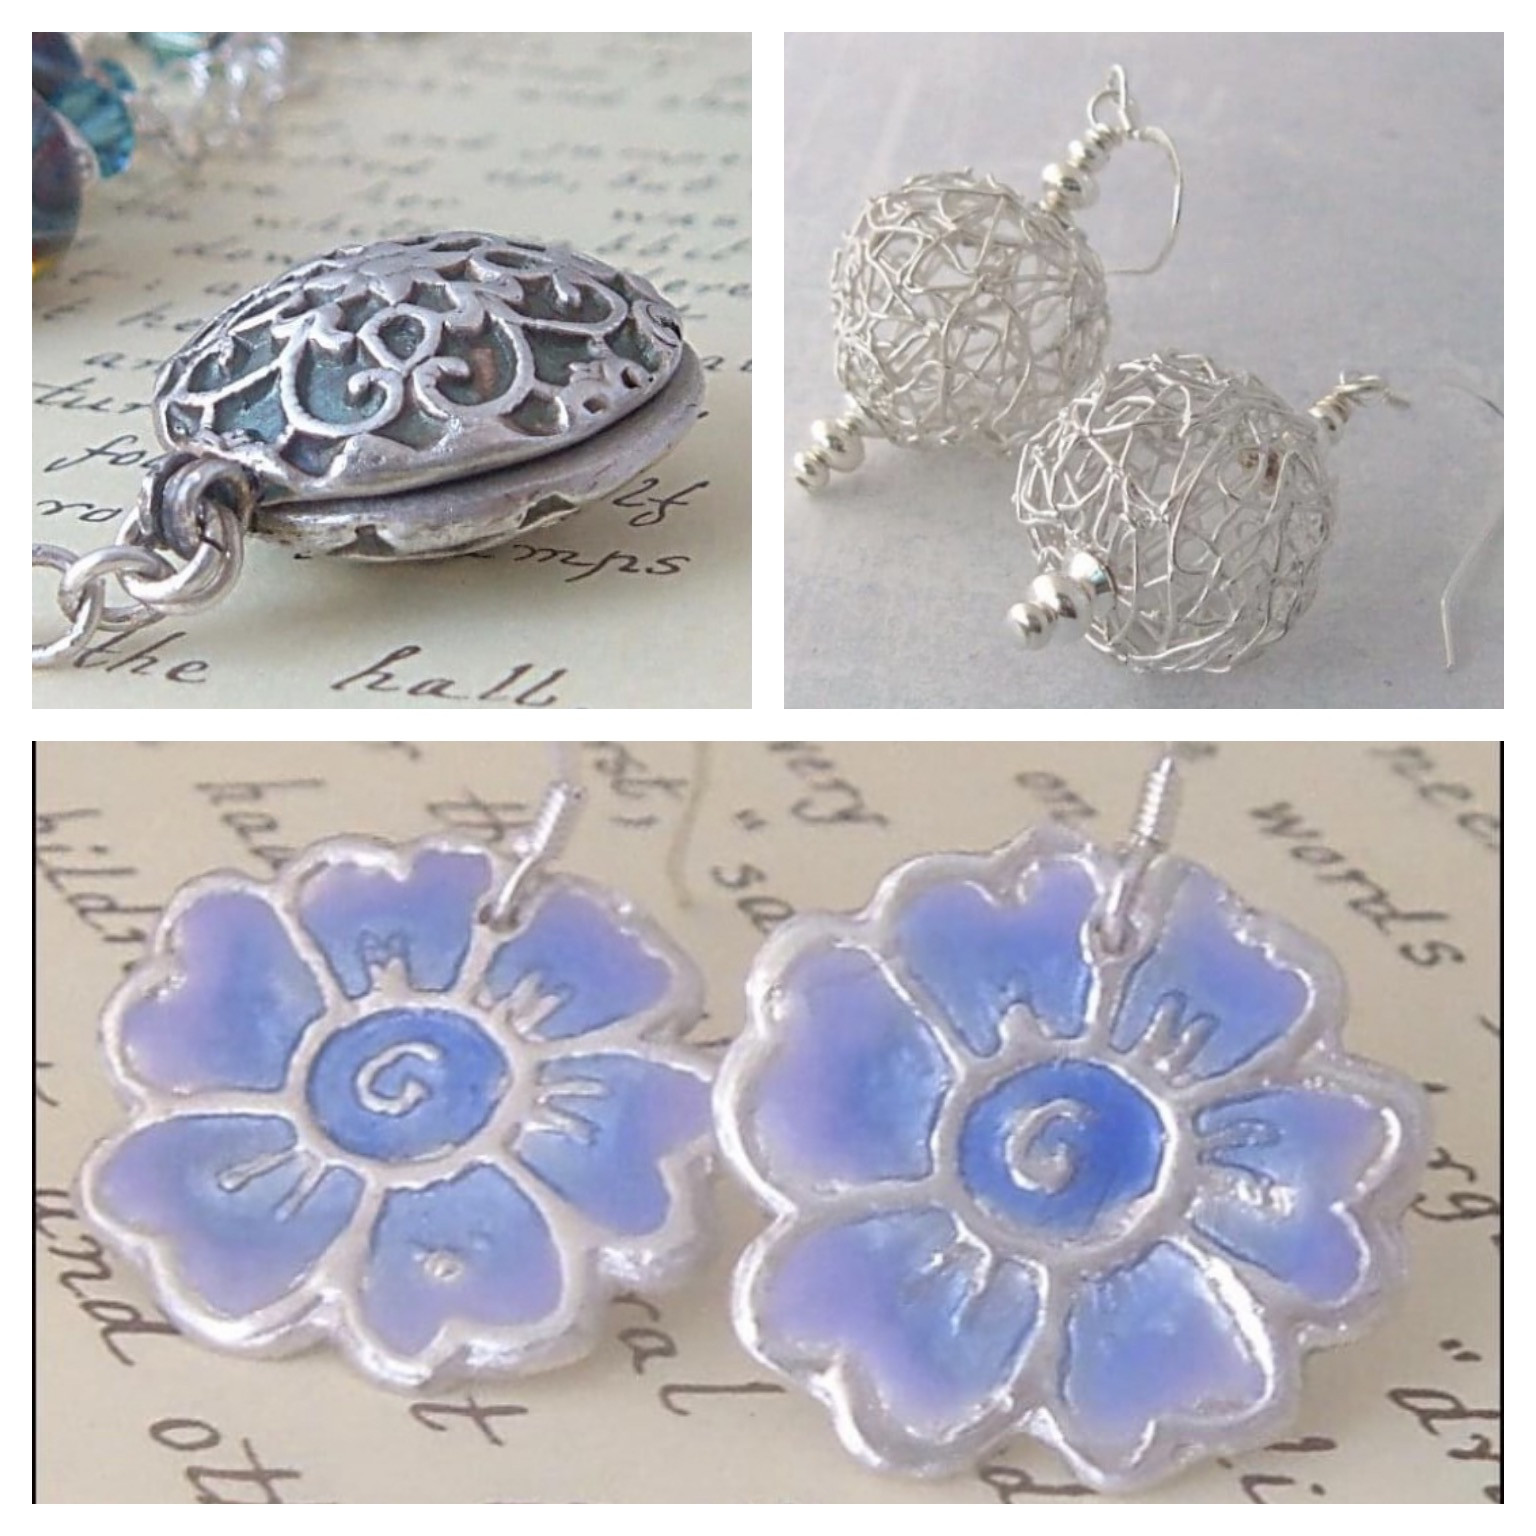 Silver Clay/PMC jewellery 10.00-3.00 pm